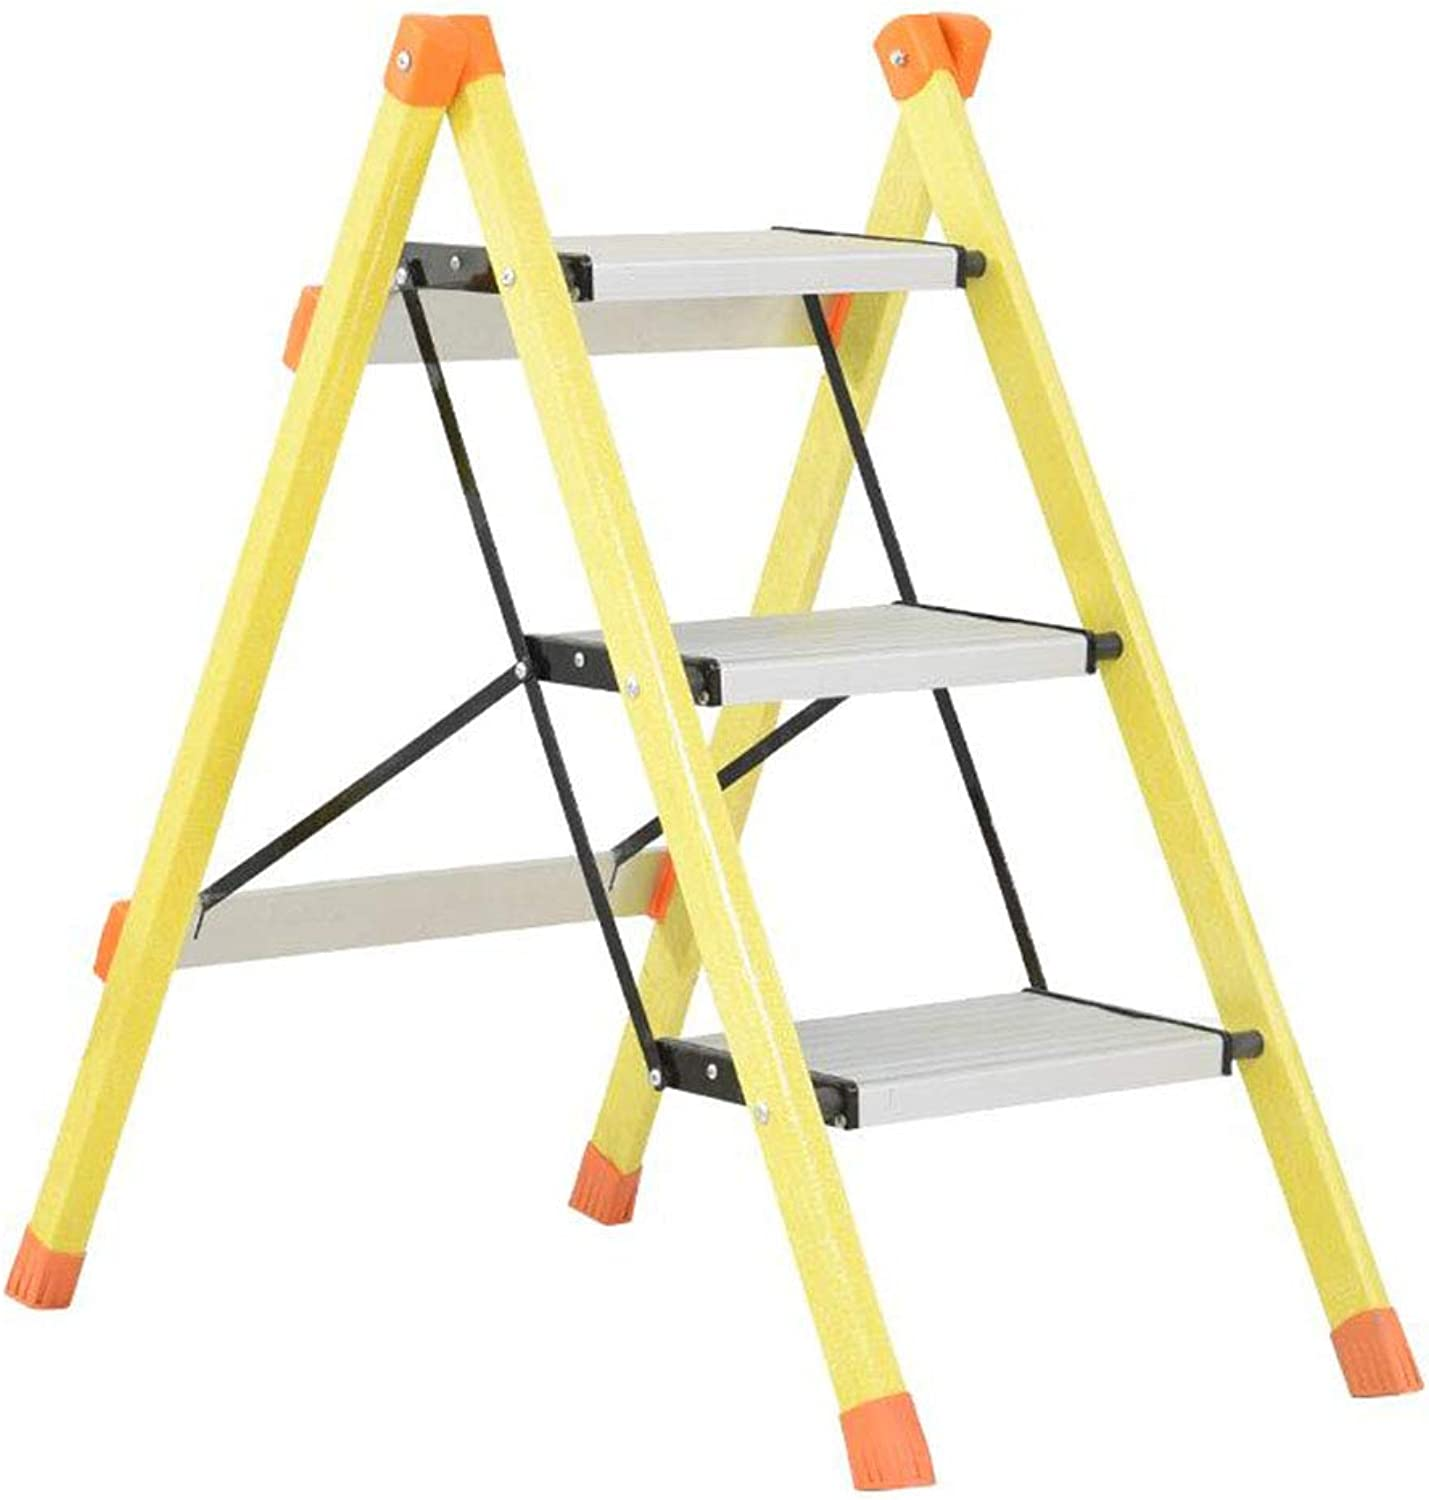 WaWei Three-Step Folding Step Stool Aluminum Step Ladder, Household Kitchen Portable Pedal Ladder Yellow Step Stool